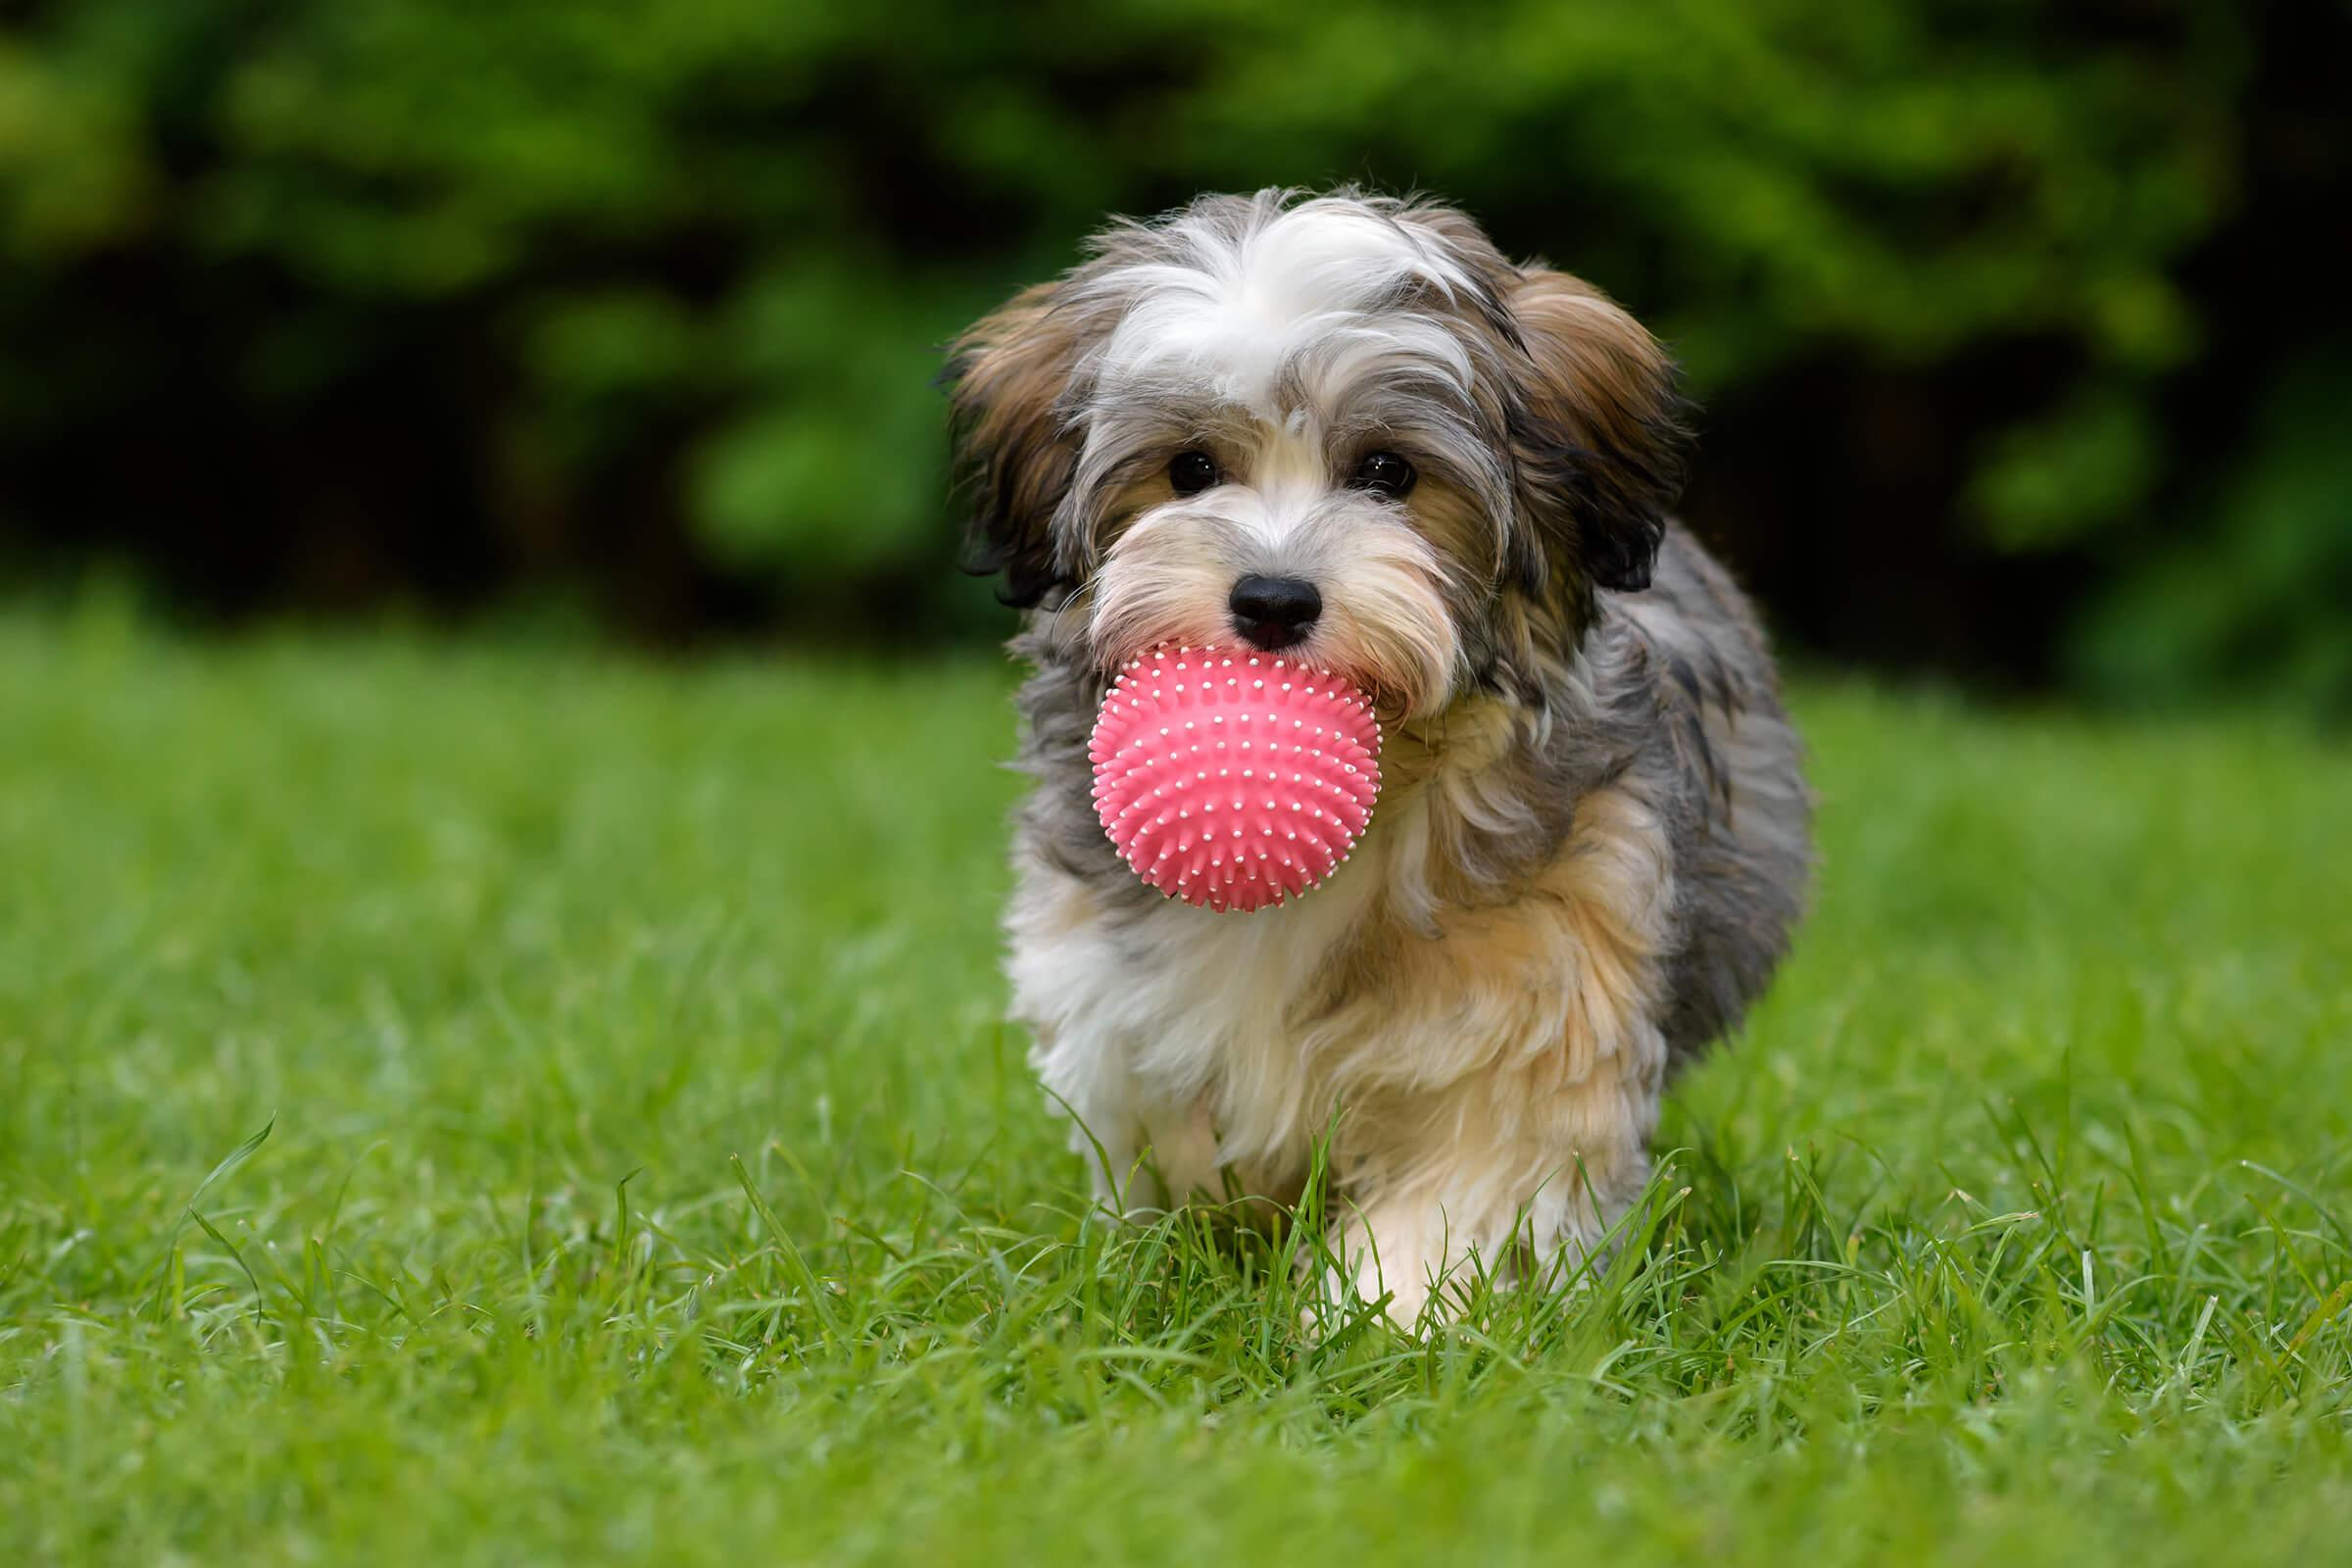 a brown dog carrying a frisbee in its mouth